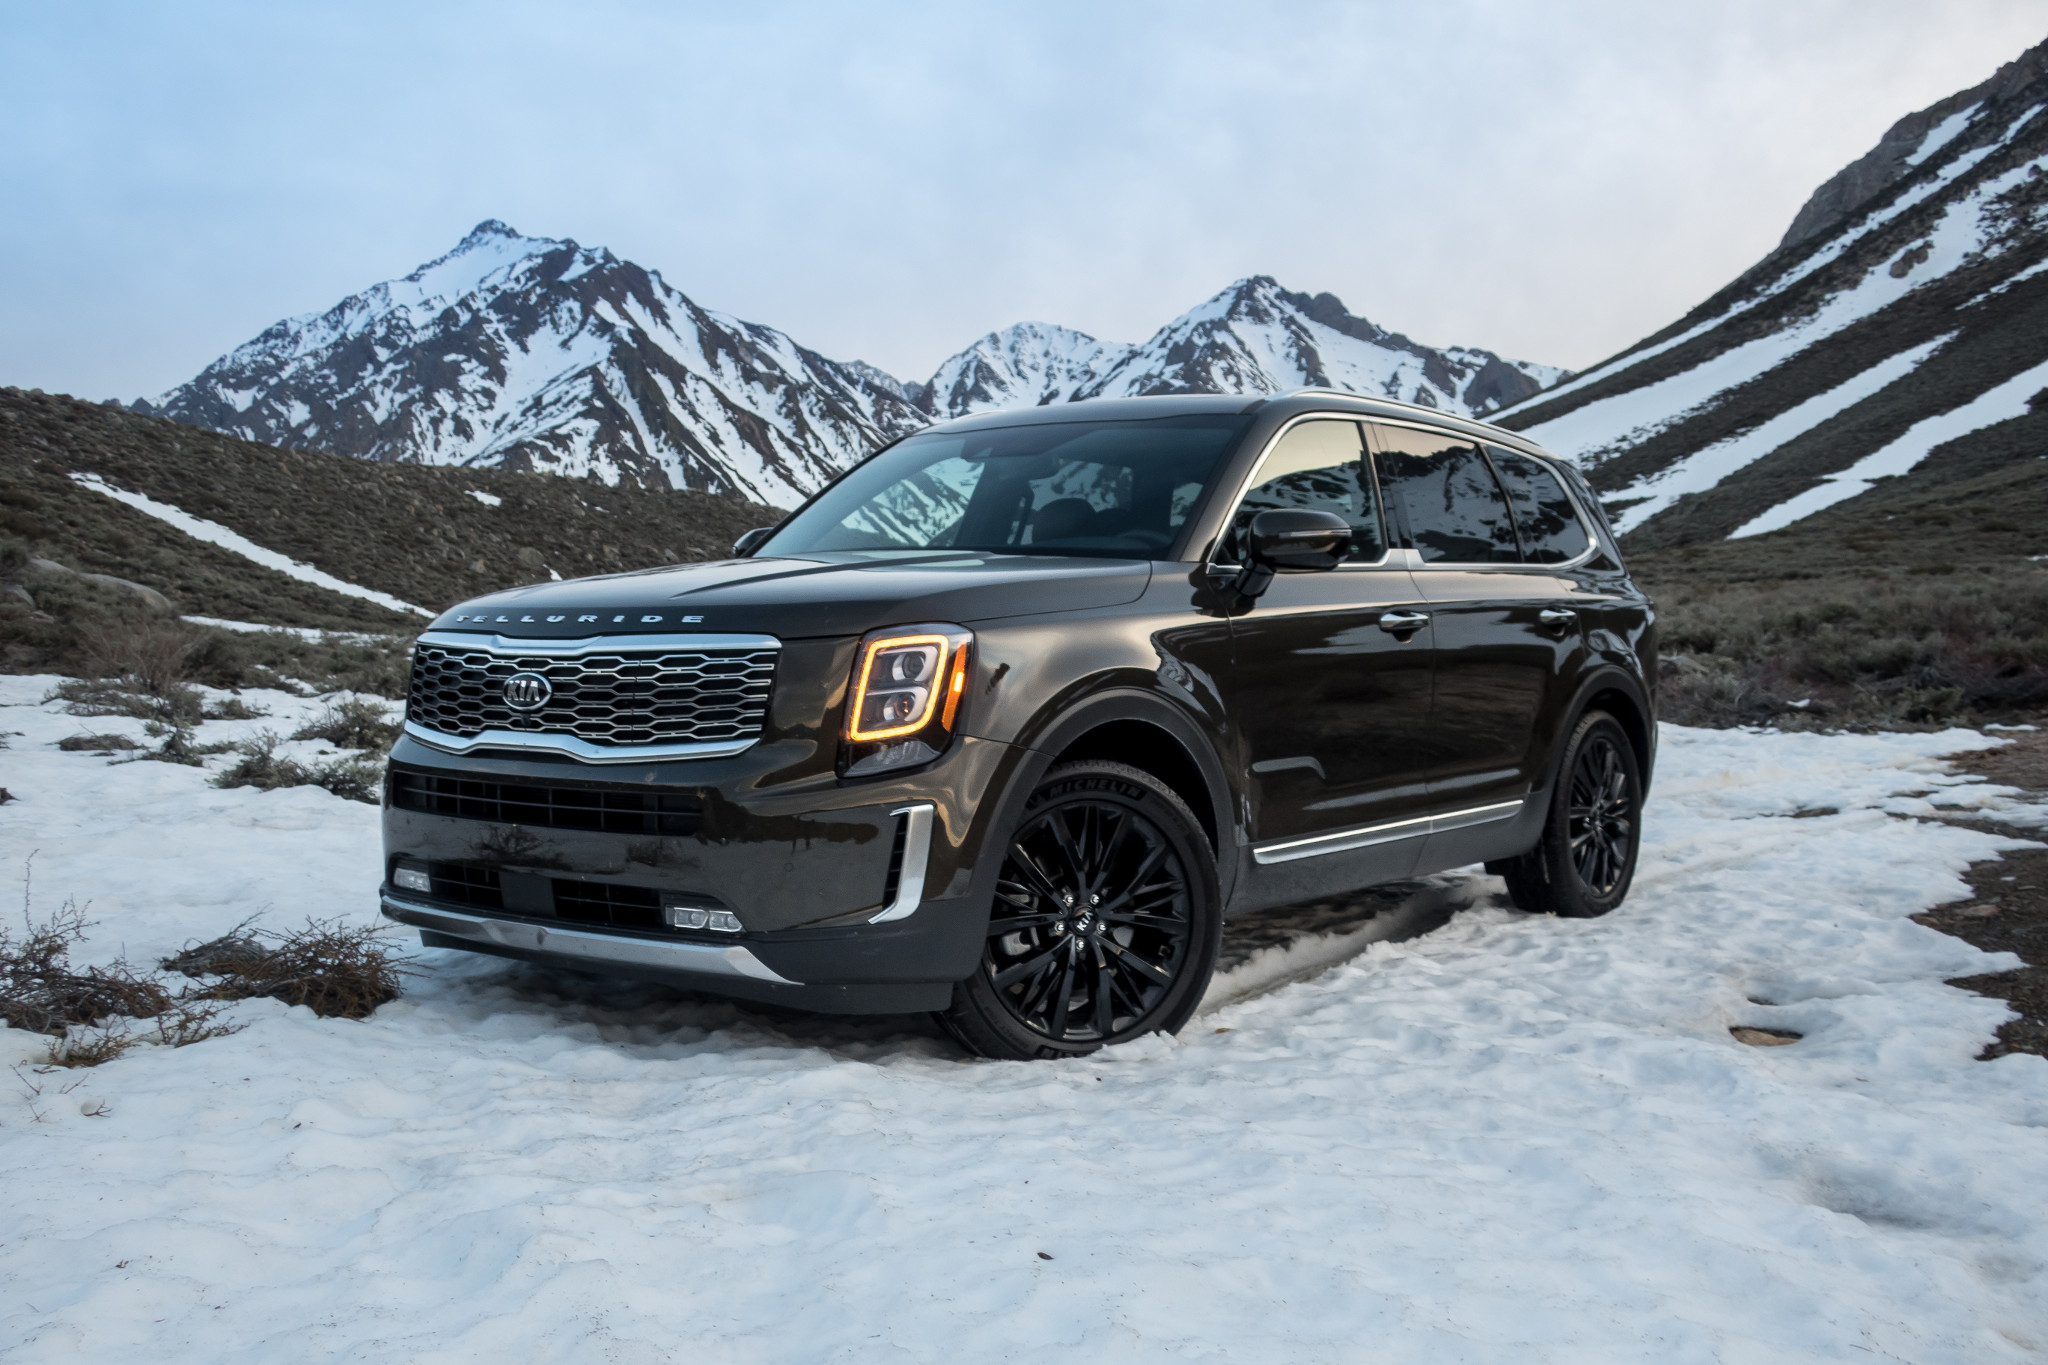 2020 Chevrolet Corvette, Jeep Gladiator, Kia Telluride … You're the Best